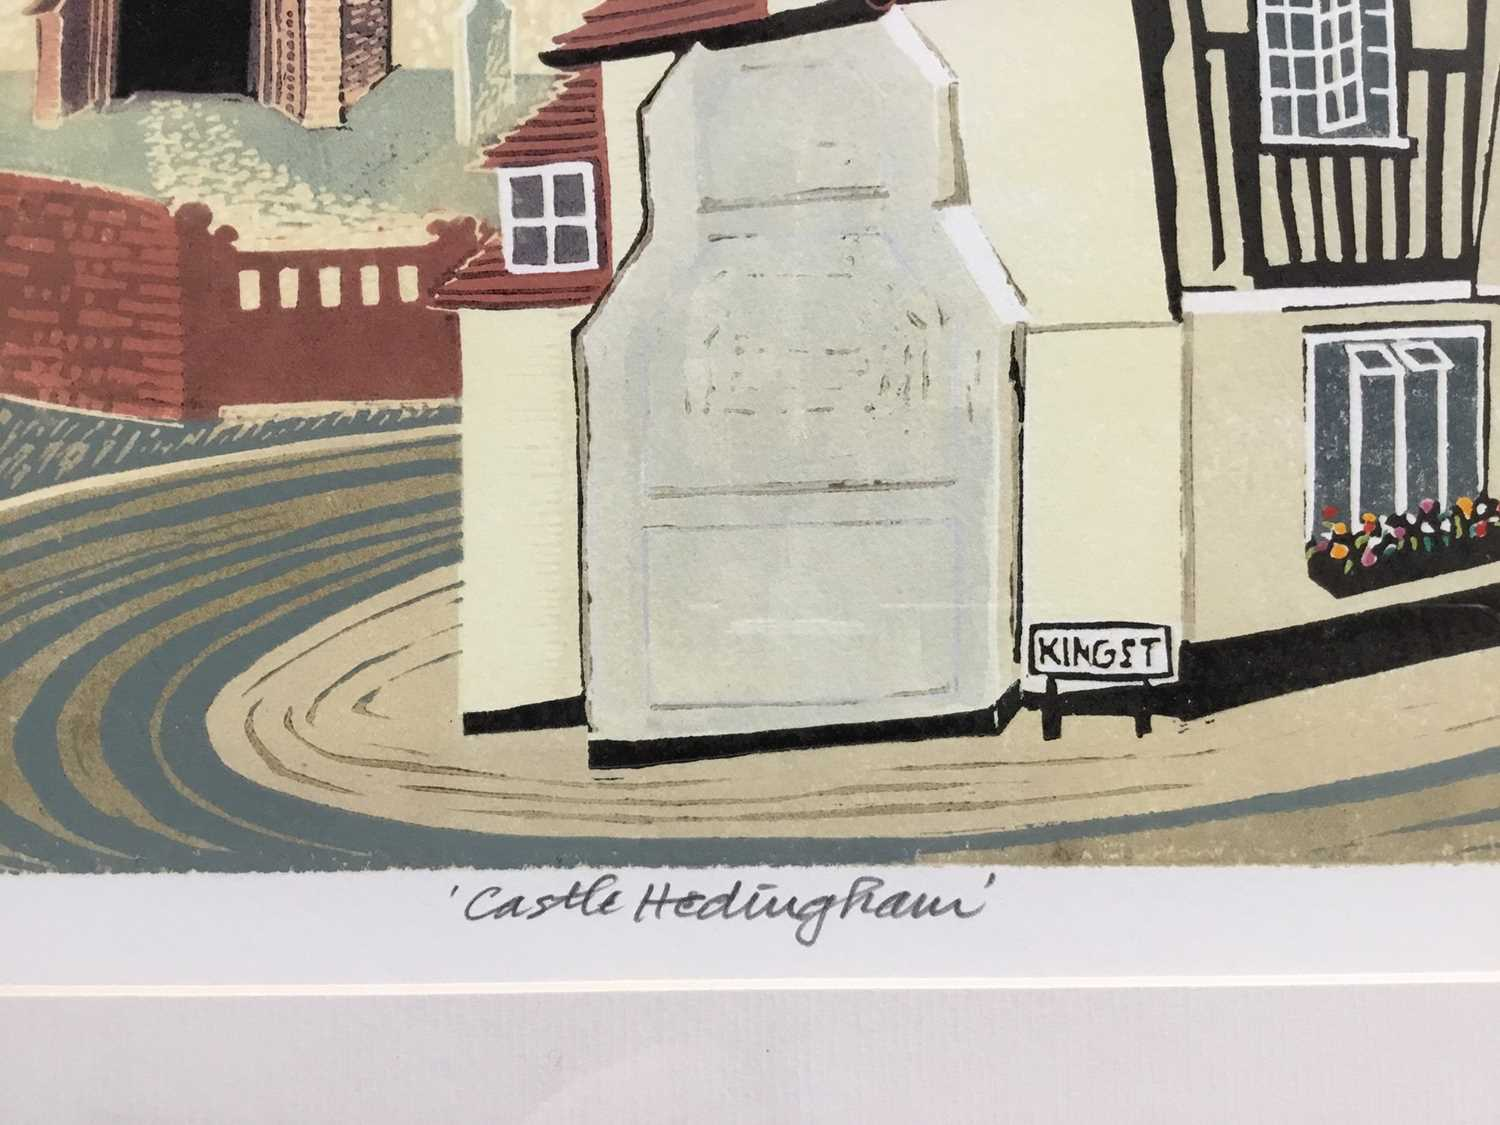 Penny Berry Patterson (1941-2021) colour linocut, Castle Hedingham, signed titled and numbered 10/20 - Image 3 of 6